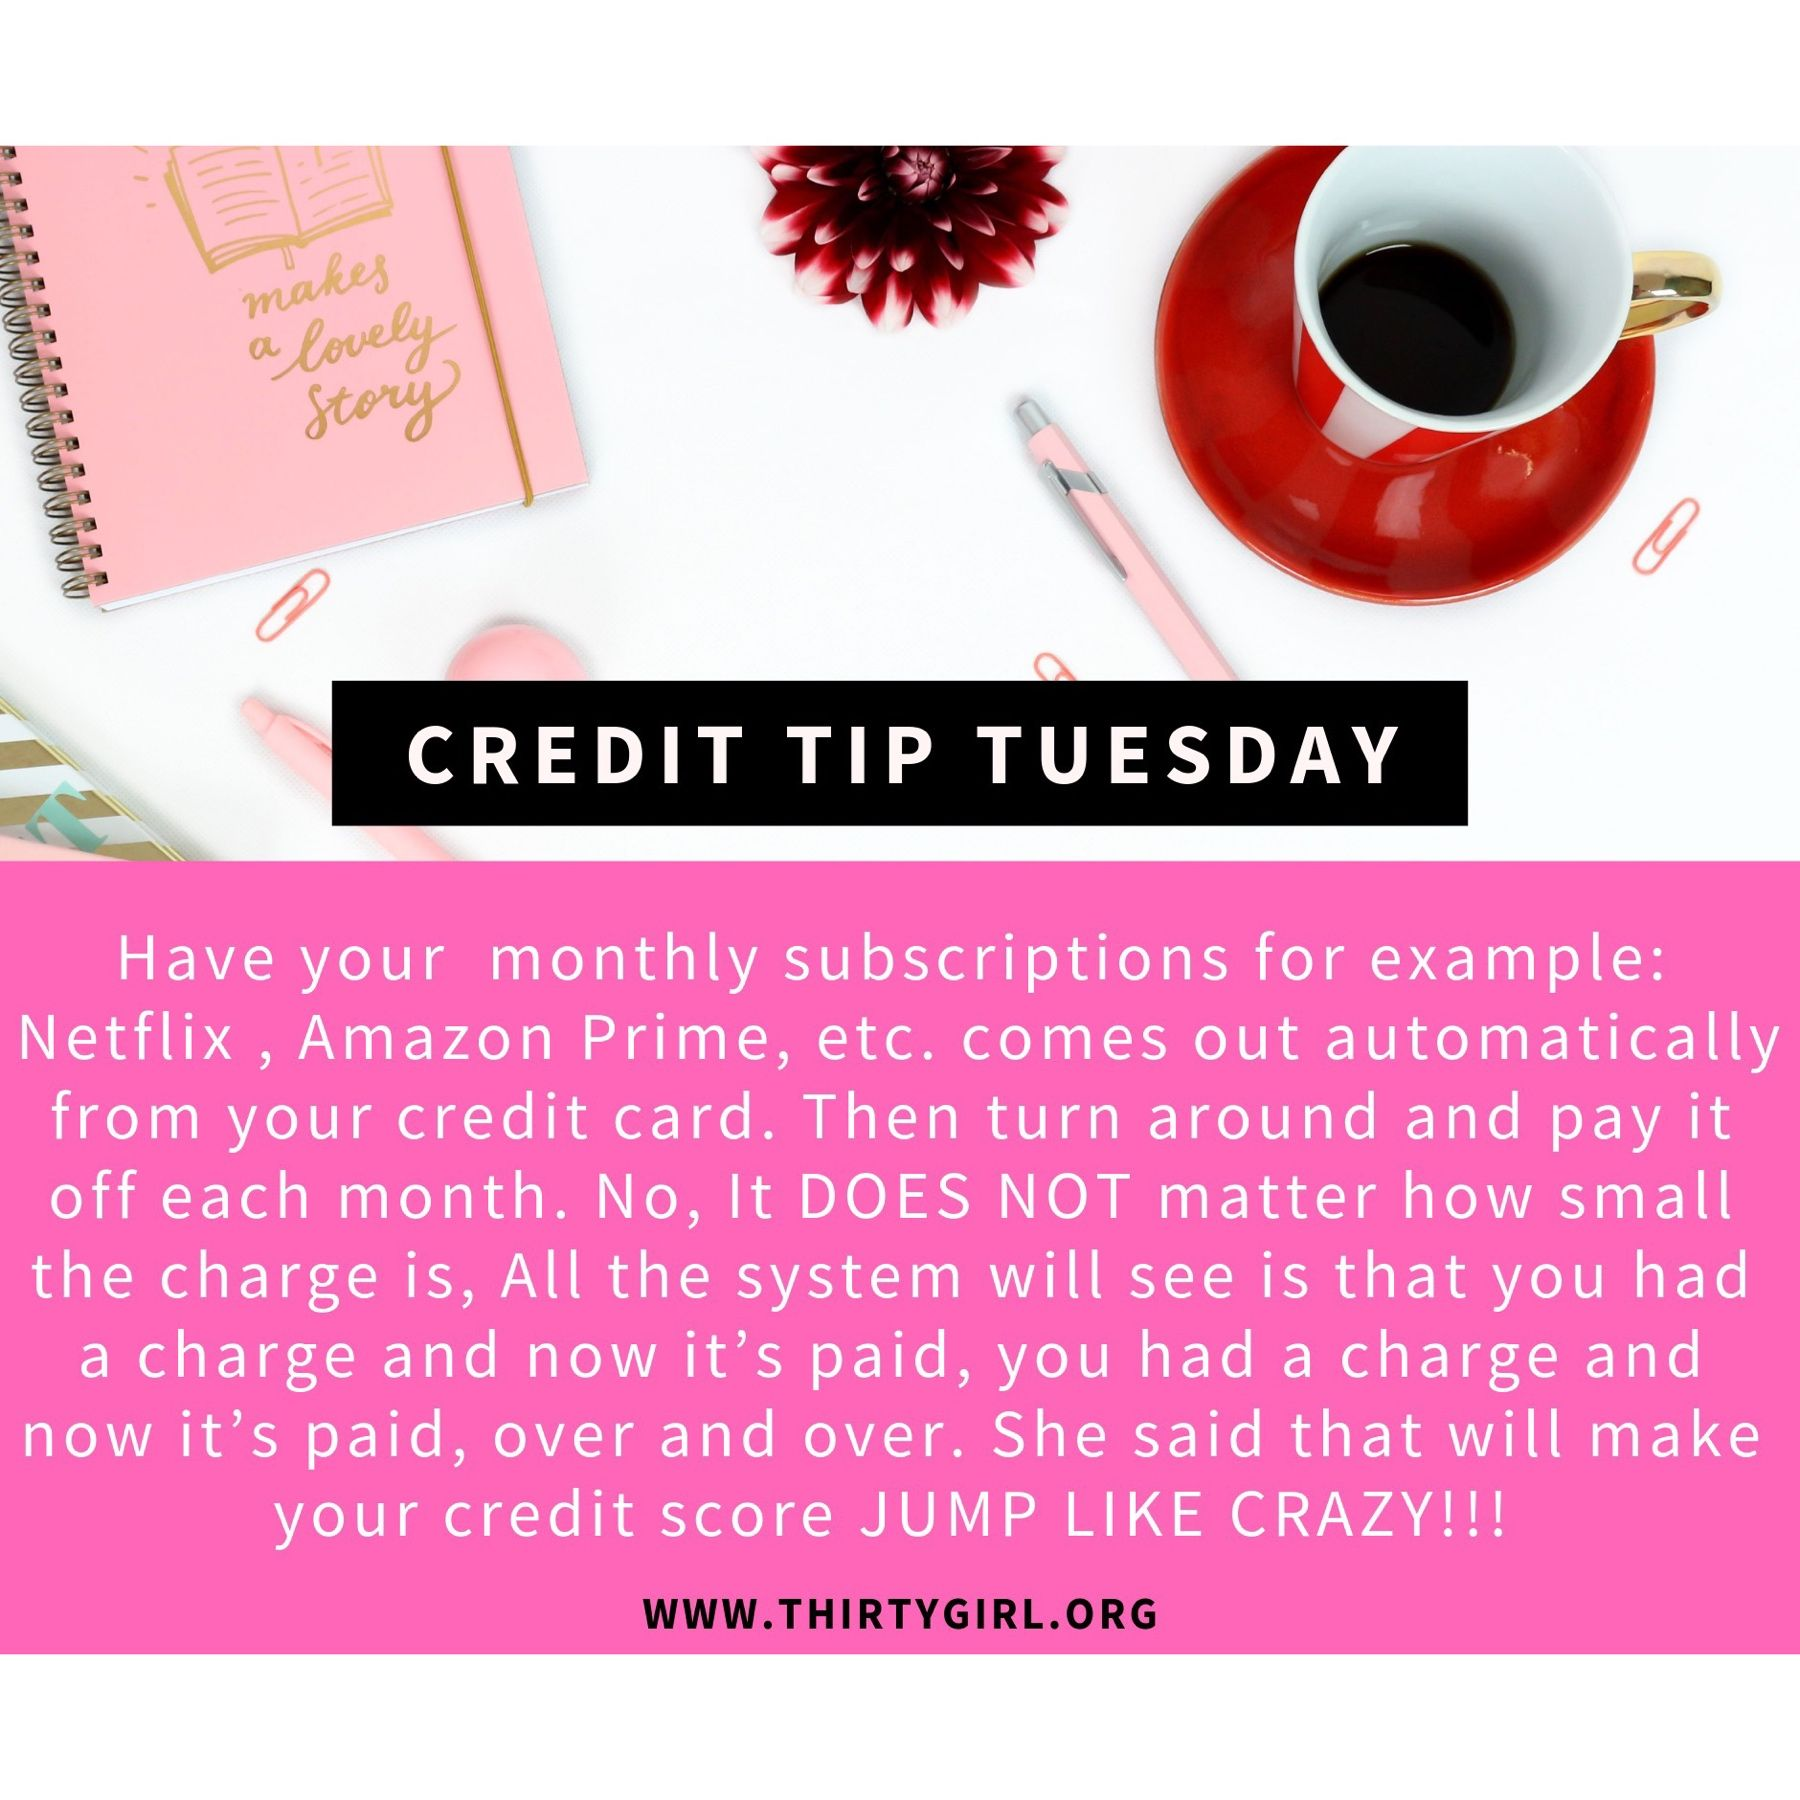 Start seeing results in no time! credit creditrepair